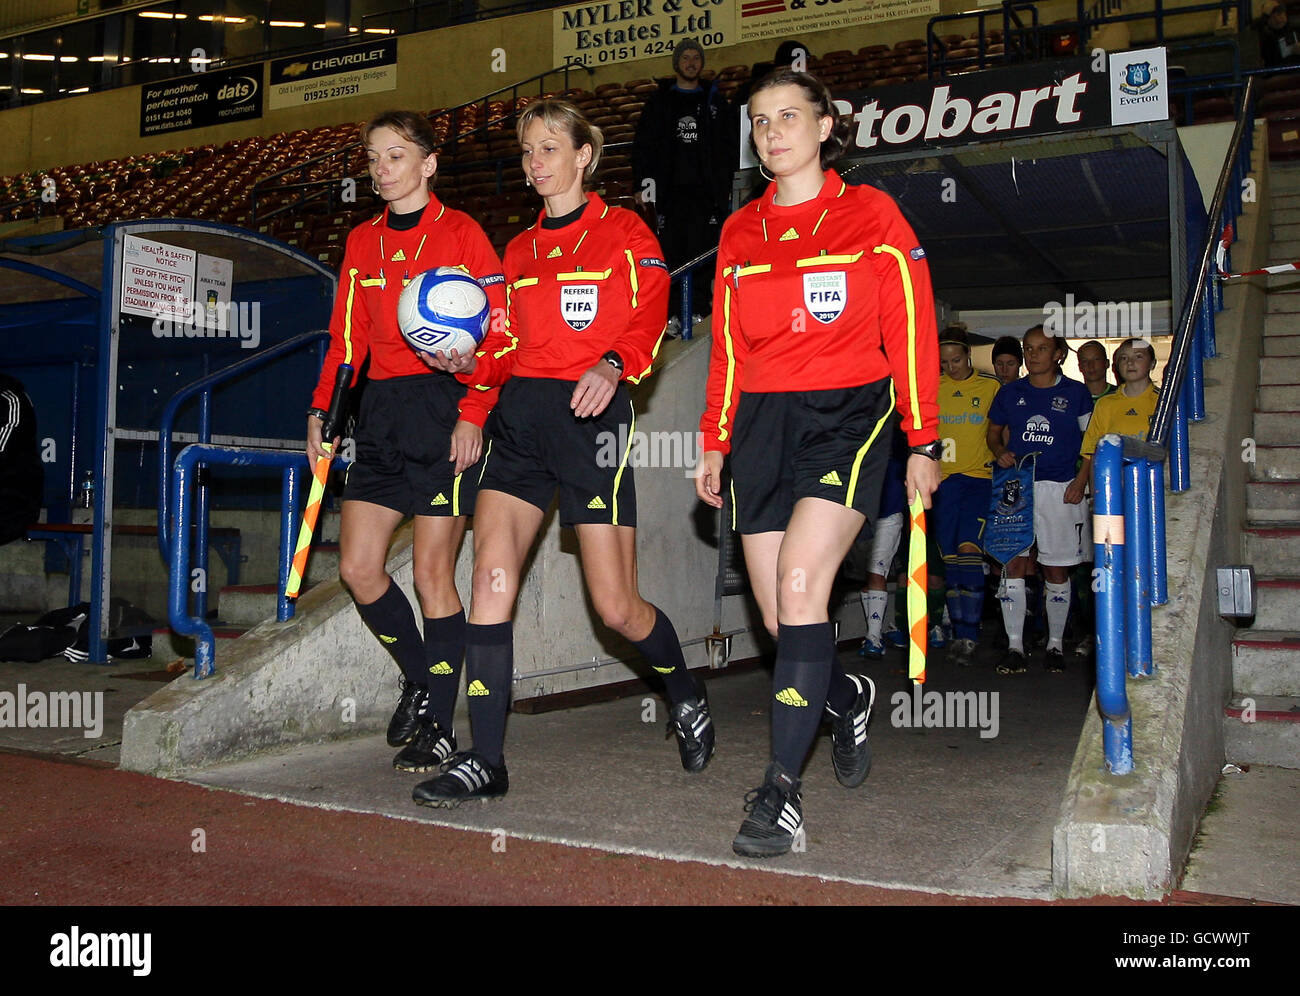 Soccer - UEFA Champions League - Round of 16 - Second Leg - Everton v Brondby IF - Stobart Stadium Halton - Stock Image